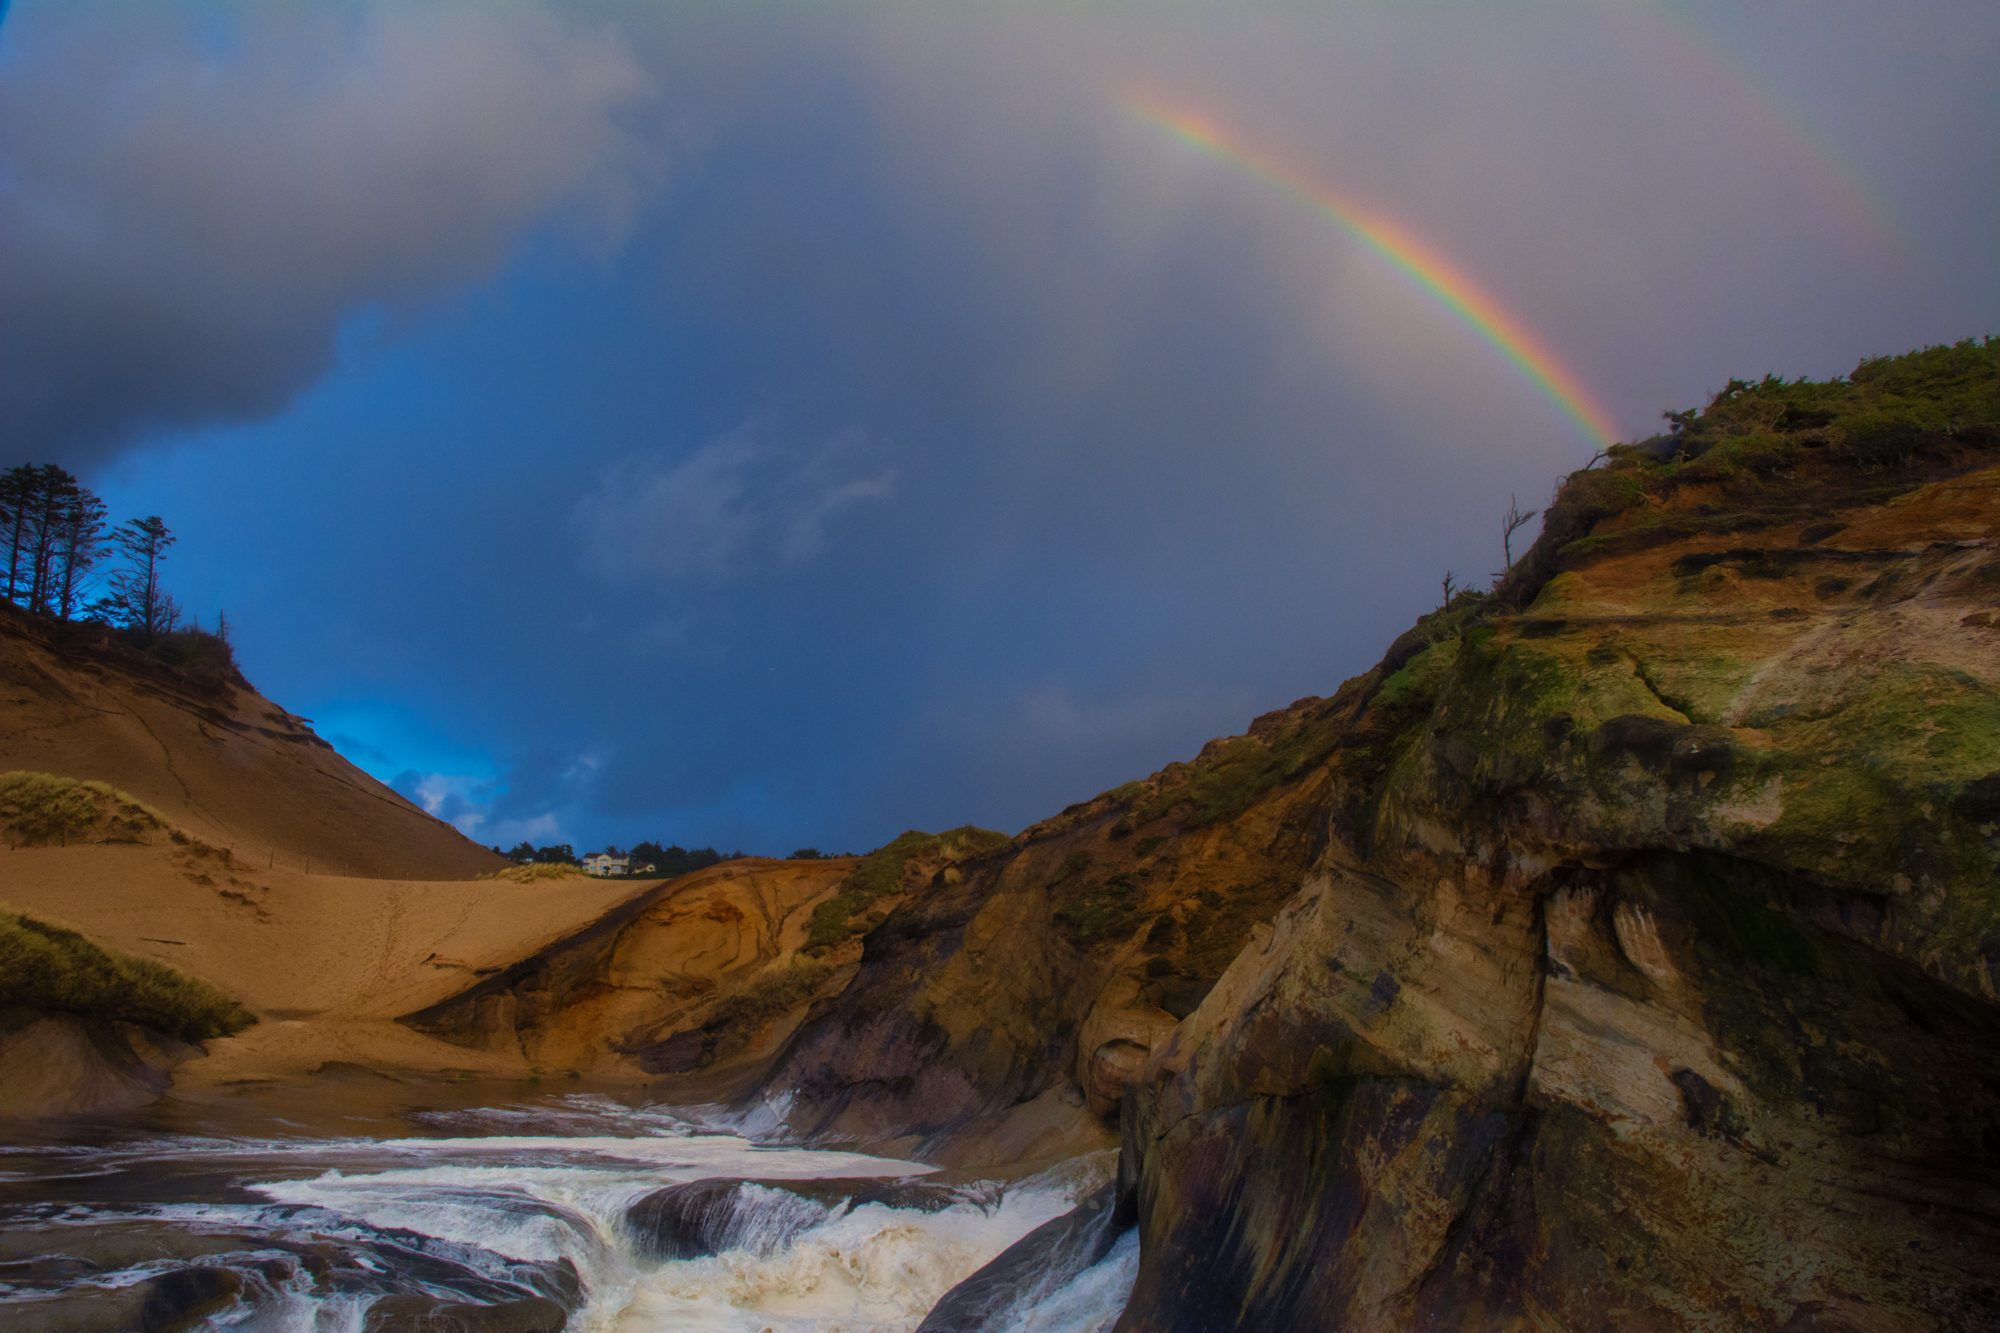 Rainbow at Cape Kiwanda just as the rain let up.